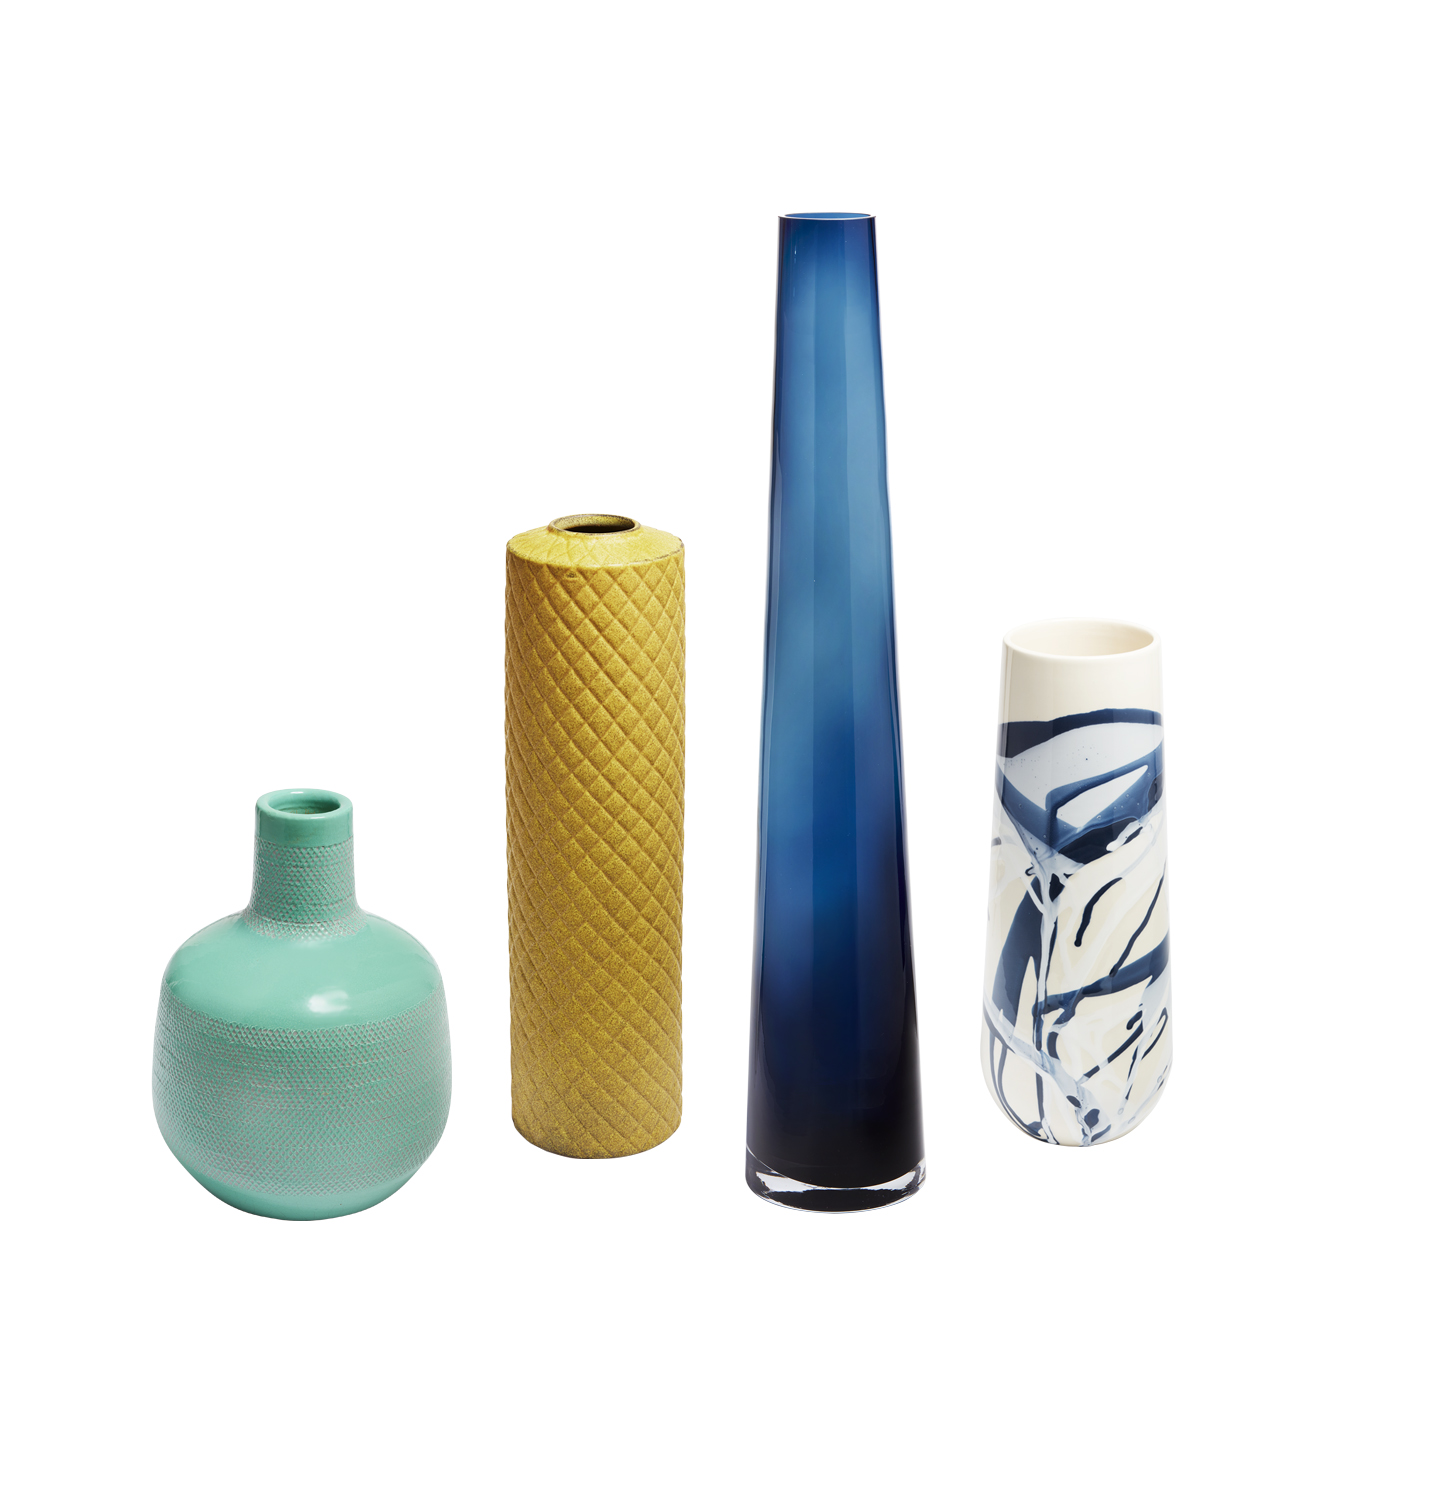 Four vases from CB2